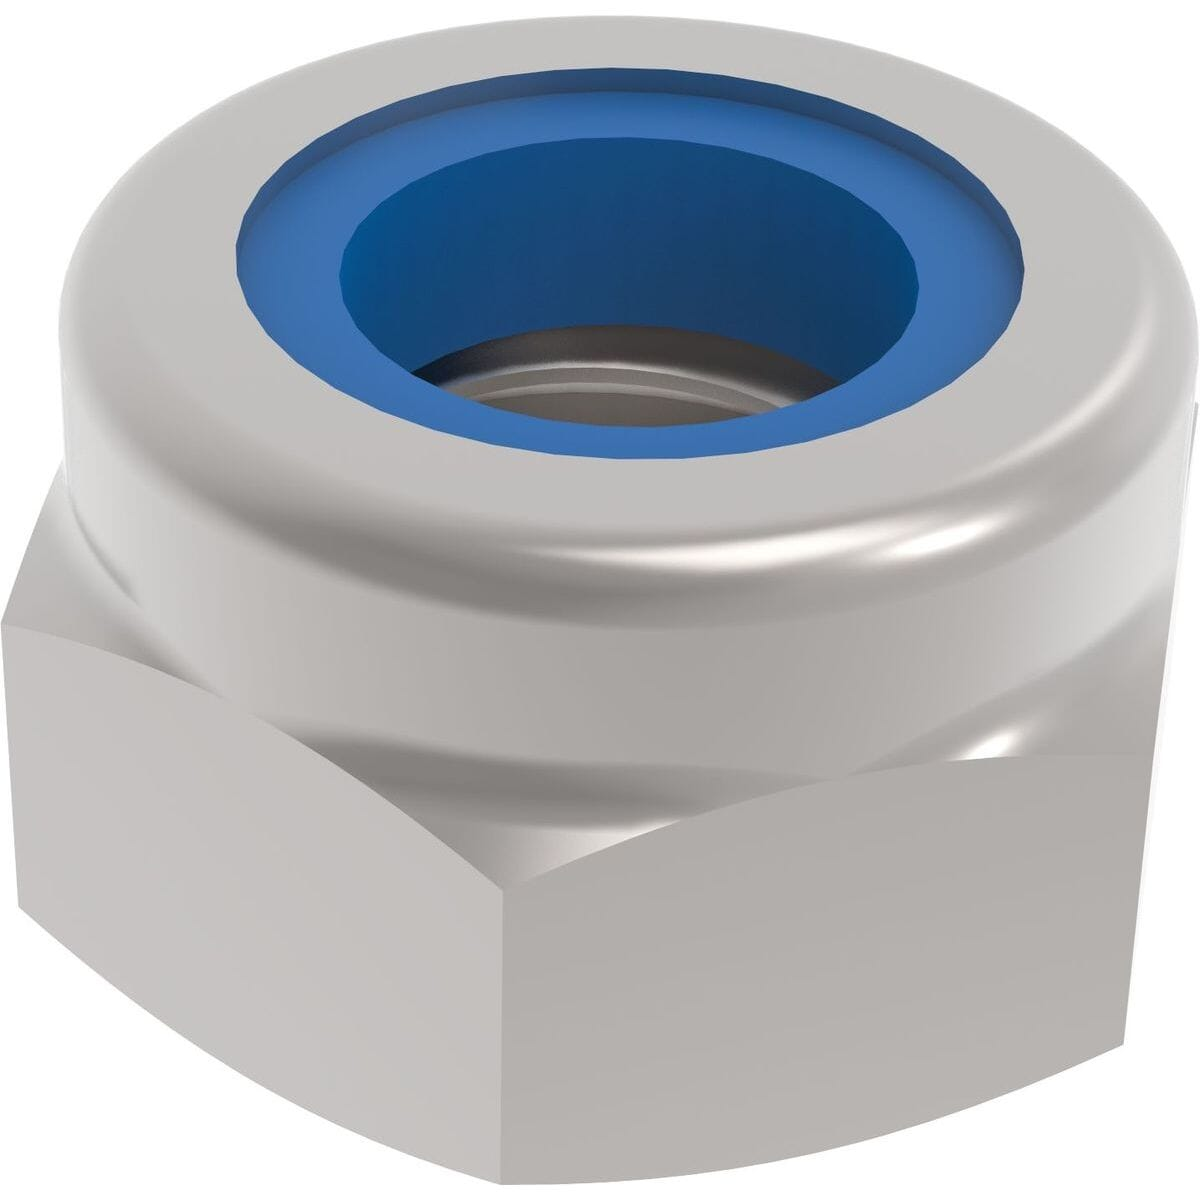 M6 Hexagon Nylon Locking Nuts (DIN 985) - Marine Stainless Steel (A4)